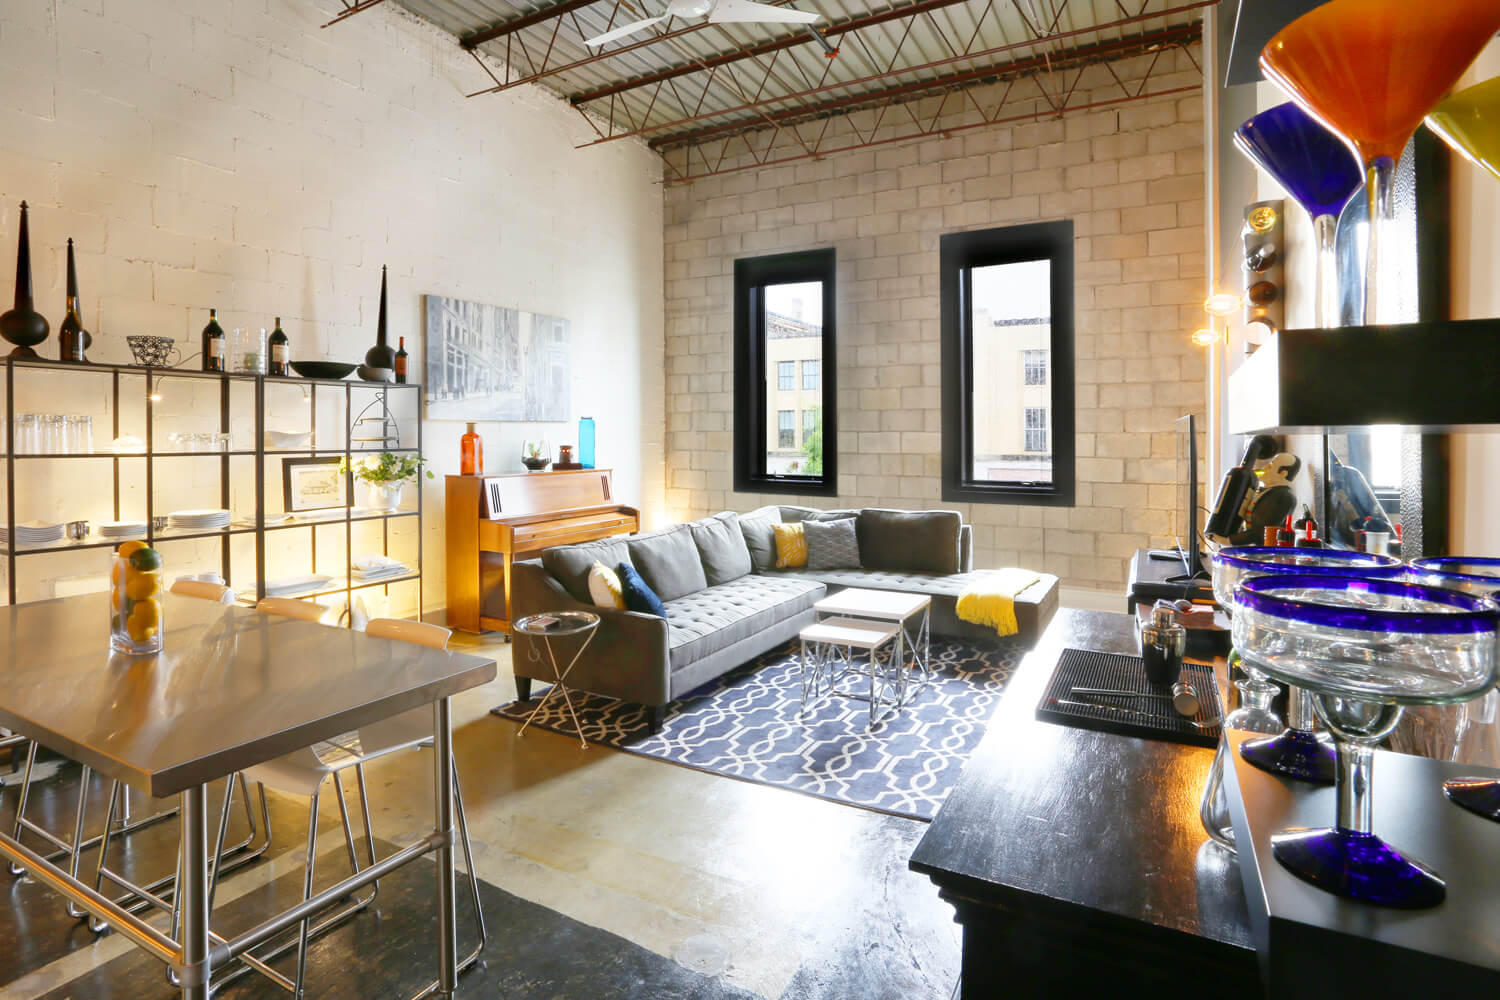 District 36 Lofts Designed by Foshee Architecture - Apartment Living Room